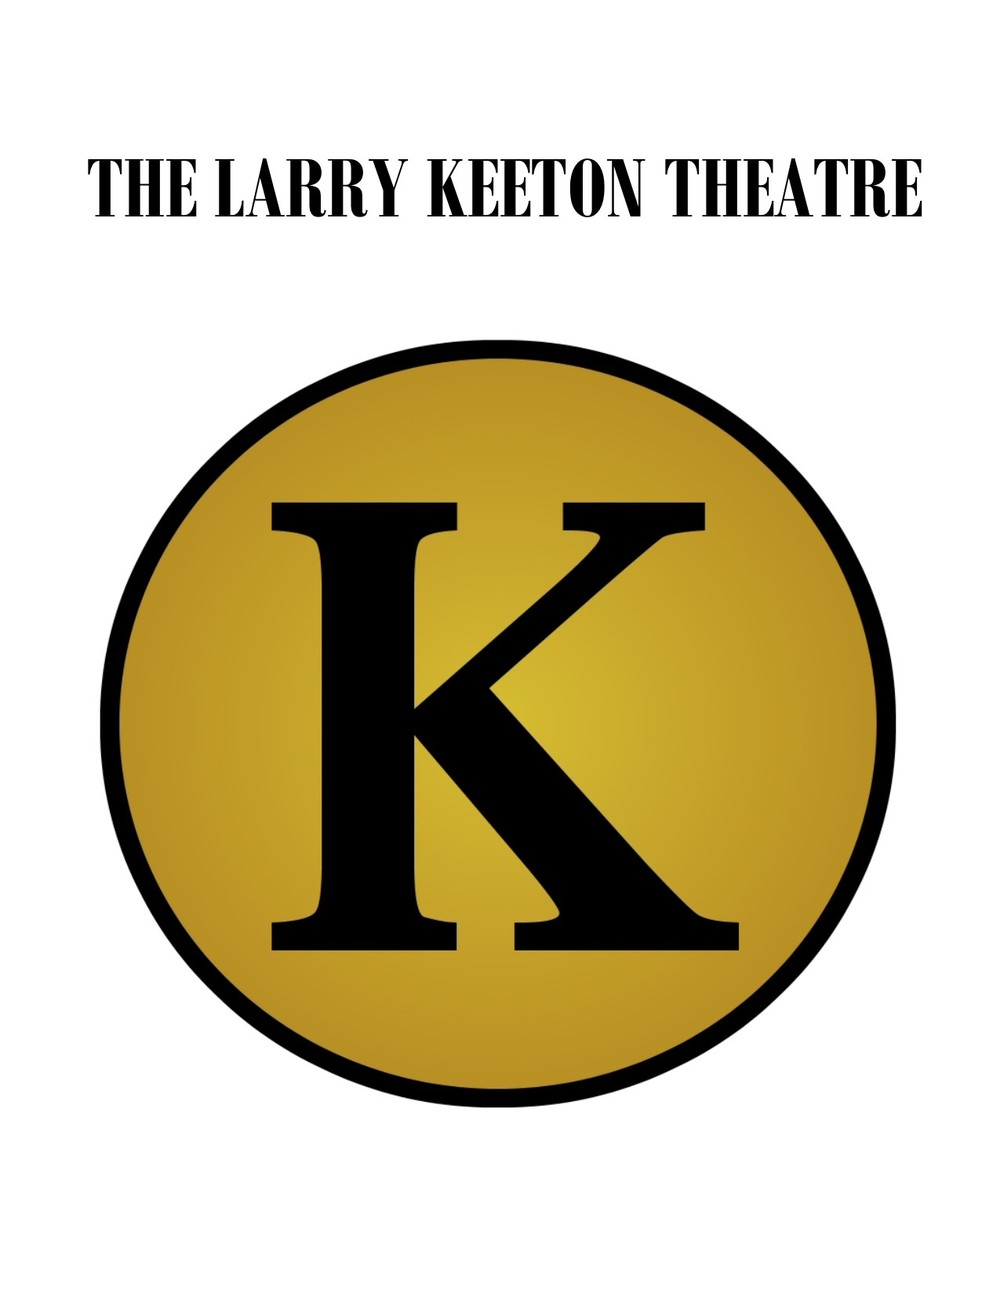 LARRY KEETON THEATRE